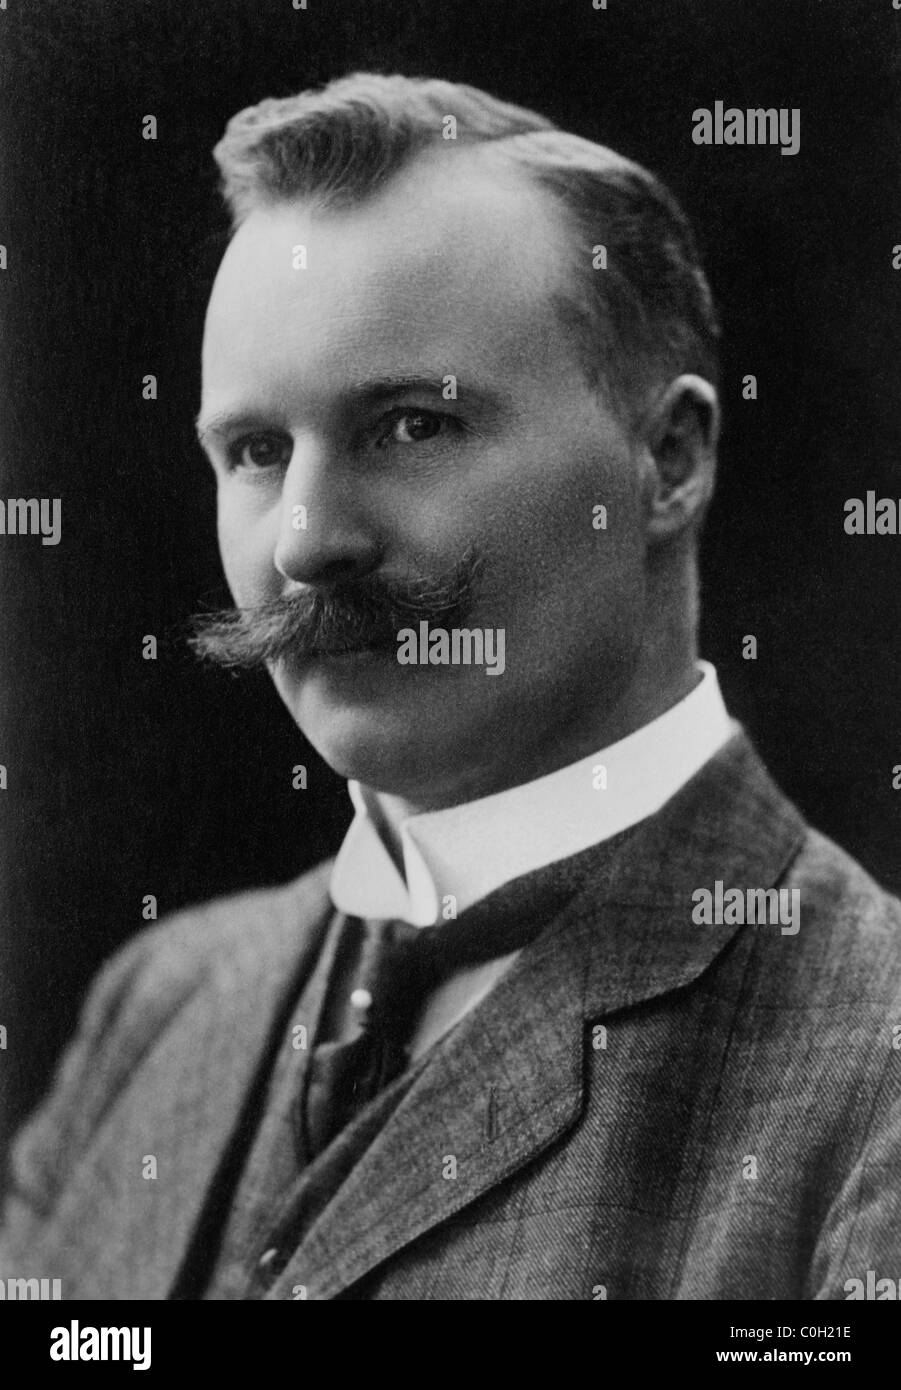 Swedish engineer and industrialist Nils Gustaf Dalen (1869 - 1937) - winner of the Nobel Prize in Physics in 1912. - Stock Image